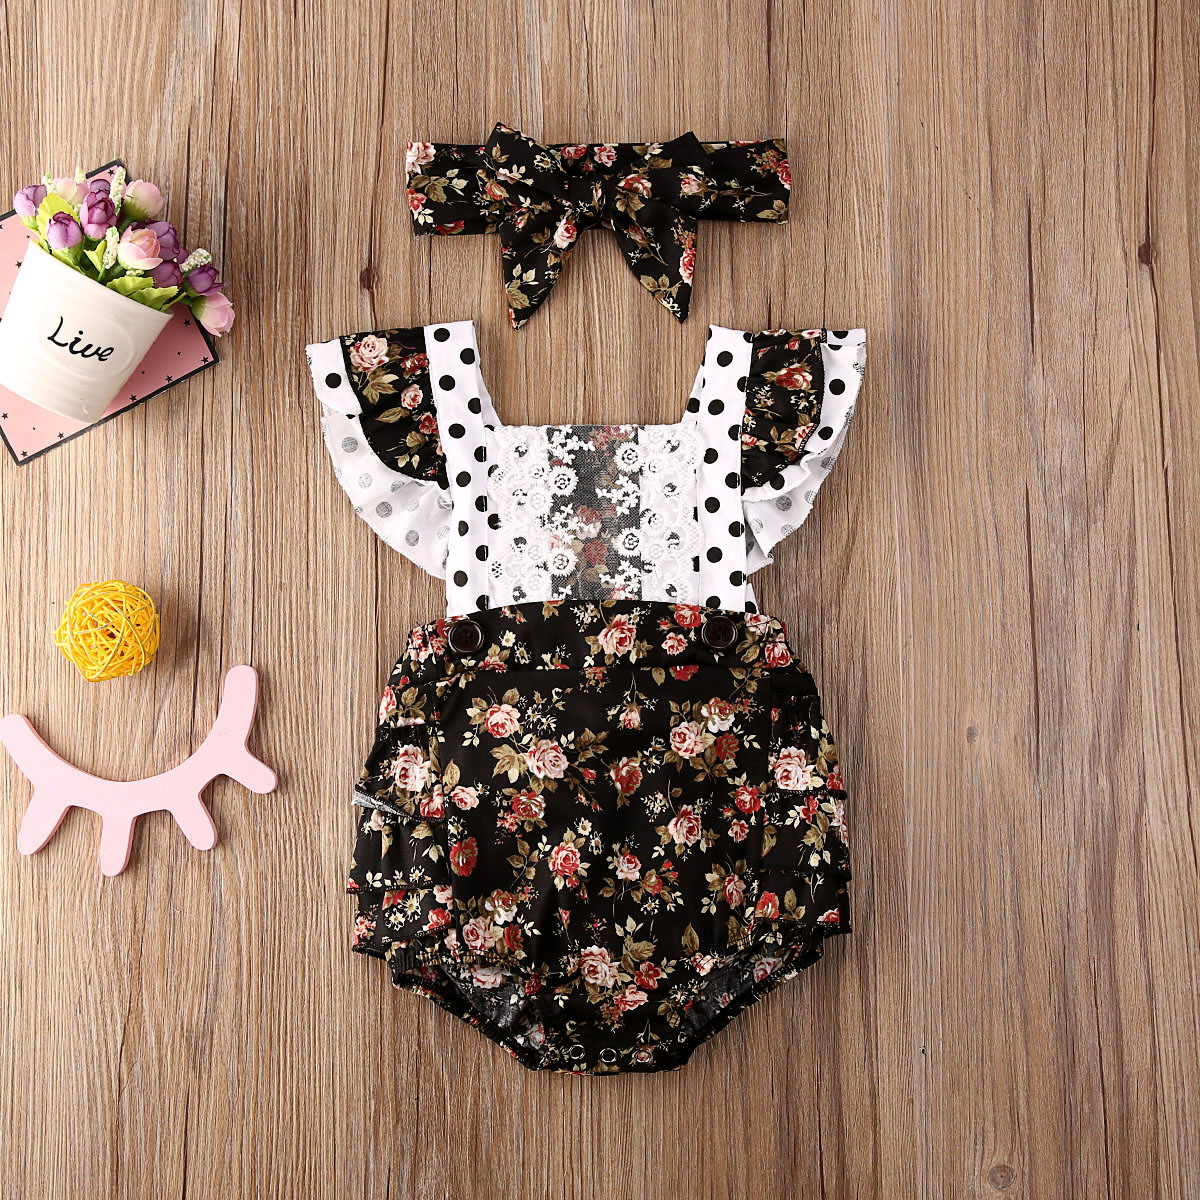 Pudcoco Newborn Baby Girl Clothes Flower Print Lace Ruffle Sleeveless Romper Jumpsuit Headband 2Pcs Outfits Sunsuit Clothes